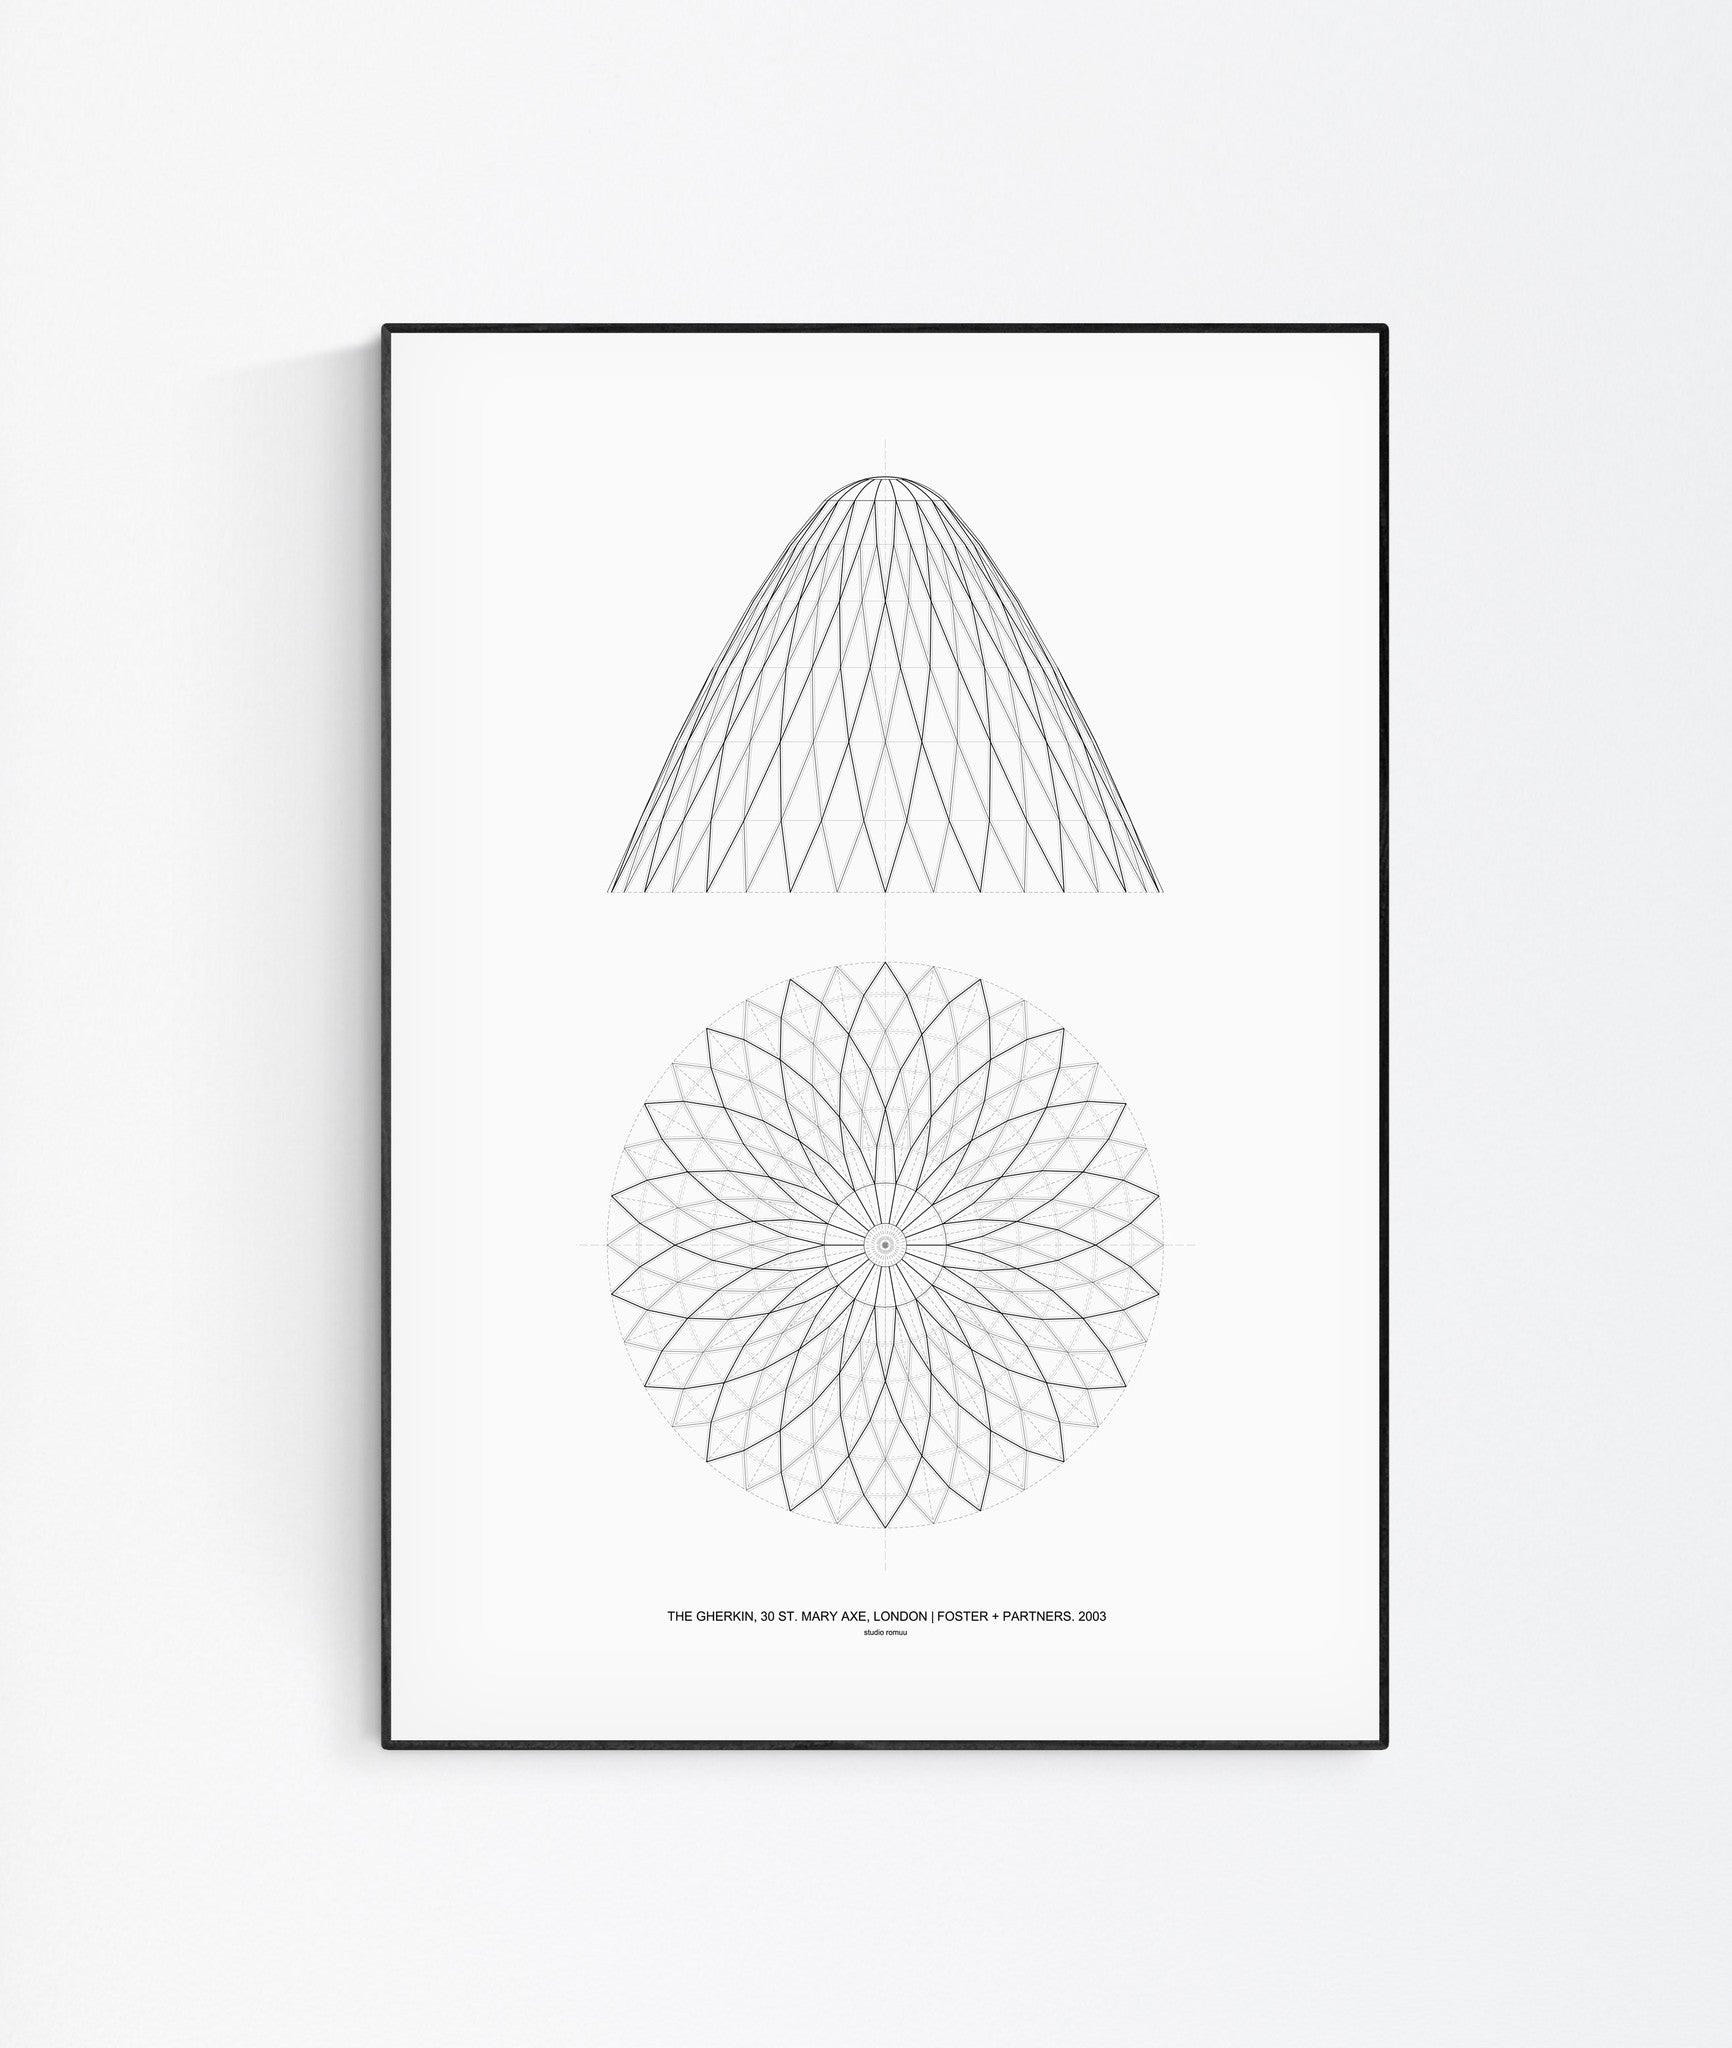 The Gherkin Architectural Print by Studio Romuu - Wall Art